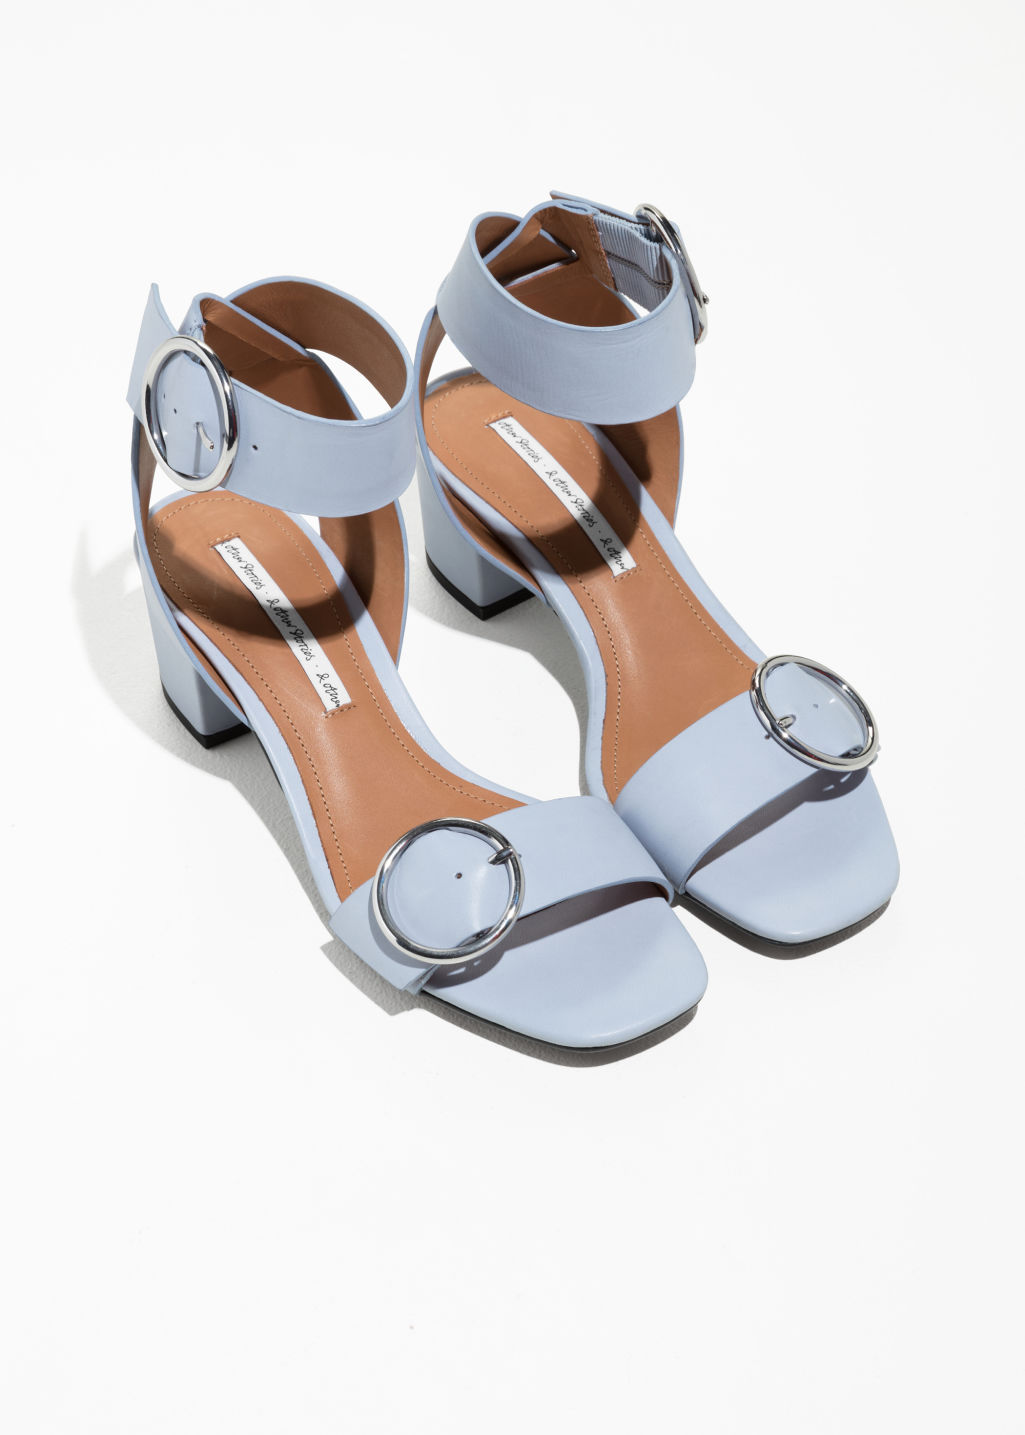 & OTHER STORIES Circle Buckle Sandals - Grey